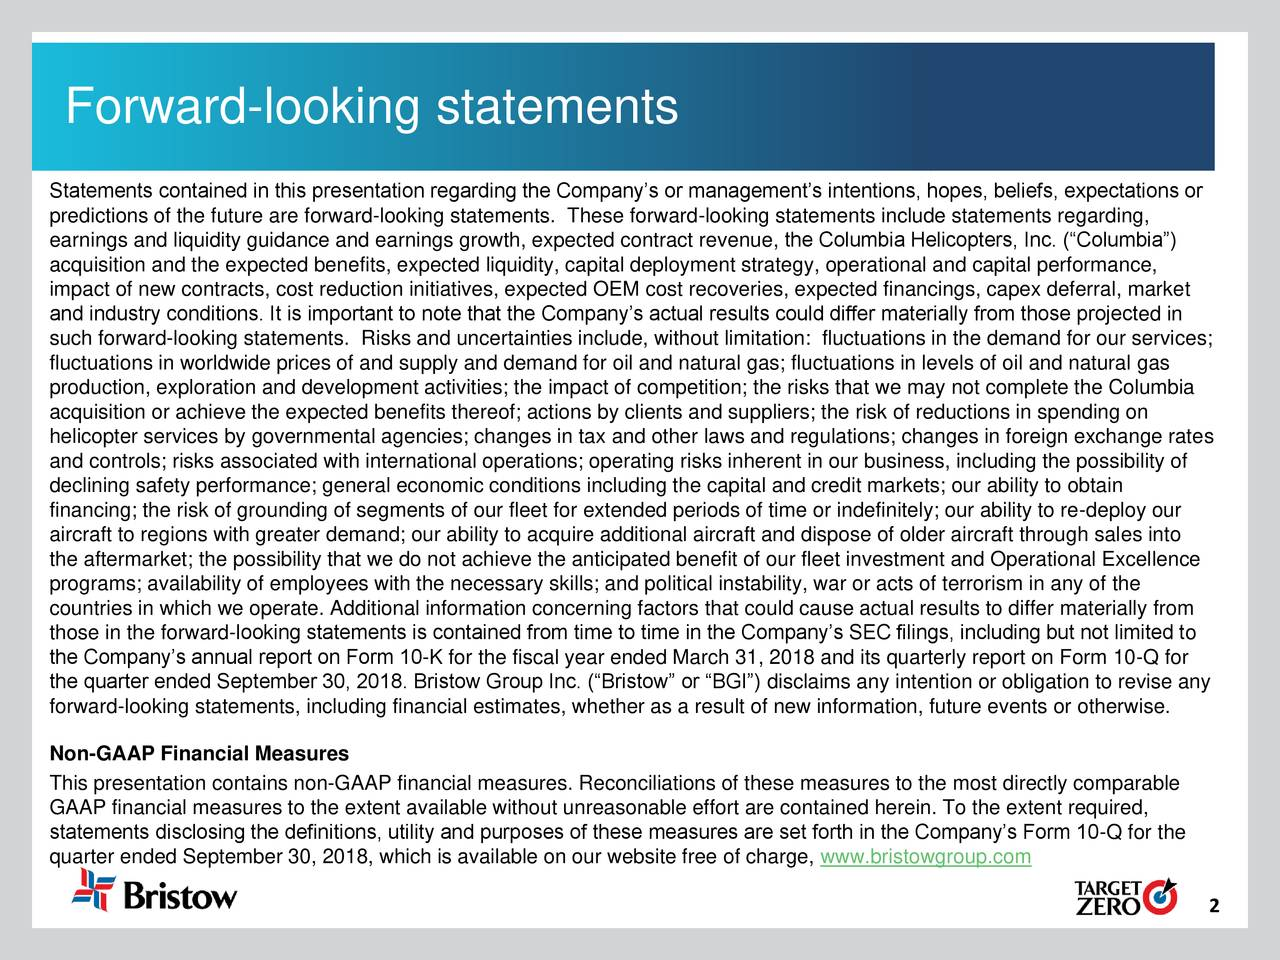 "90 160 Fill Forward-looking statements Statements contained in this presentation regarding the Company's or management's intentions, hopes, beliefs, expectations or 212 predictions of the future are forward-looking statements. These forward-looking statements include statements regarding, 0 0 earnings and liquidity guidance and earnings growth, expected contract revenue, the Columbia Helicopters, Inc. (""Columbia"") Fill acquisition and the expected benefits, expected liquidity, capital deployment strategy, operational and capital performance, impact of new contracts, cost reduction initiatives, expected OEM cost recoveries, expected financings, capex deferral, market and industry conditions. It is important to note that the Company's actual results could differ materially from those projected in such forward-looking statements. Risks and uncertainties include, without limitation: fluctuations in the demand for our services; 152 fluctuations in worldwide prices of and supply and demand for oil and natural gas; fluctuations in levels of oil and natural gas production, exploration and development activities; the impact of competition; the risks that we may not complete the Columbia 150 151 acquisition or achieve the expected benefits thereof; actions by clients and suppliers; the risk of reductions in spending on Fill helicopter services by governmental agencies; changes in tax and other laws and regulations; changes in foreign exchange rates and controls; risks associated with international operations; operating risks inherent in our business, including the possibility of declining safety performance; general economic conditions including the capital and credit markets; our ability to obtain financing; the risk of grounding of segments of our fleet for extended periods of time or indefinitely; our ability to re-deploy our 26 aircraft to regions with greater demand; our ability to acquire additional aircraft and dispose of older aircraft through sales into 187 the aftermarket; the possibility that we do not achieve the anticipated benefit of our fleet investment and Operational Excellence 219 programs; availability of employees with the necessary skills; and political instability, war or acts of terrorism in any of the Fill countries in which we operate. Additional information concerning factors that could cause actual results to differ materially from those in the forward-looking statements is contained from time to time in the Company's SEC filings, including but not limited to the Company's annual report on Form 10-K for the fiscal year ended March 31, 2018 and its quarterly report on Form 10-Q for the quarter ended September 30, 2018. Bristow Group Inc. (""Bristow"" or ""BGI"") disclaims any intention or obligation to revise any 255 forward-looking statements, including financial estimates, whether as a result of new information, future events or otherwise. 91 91 Fill Non-GAAP Financial Measures This presentation contains non-GAAP financial measures. Reconciliations of these measures to the most directly comparable GAAP financial measures to the extent available without unreasonable effort are contained herein. To the extent required, statements disclosing the definitions, utility and purposes of these measures are set forth in the Company's Form 10-Q for the quarter ended September 30, 2018, which is available on our website free of charge, www.bristowgroup.com 189 187 188 Fill"